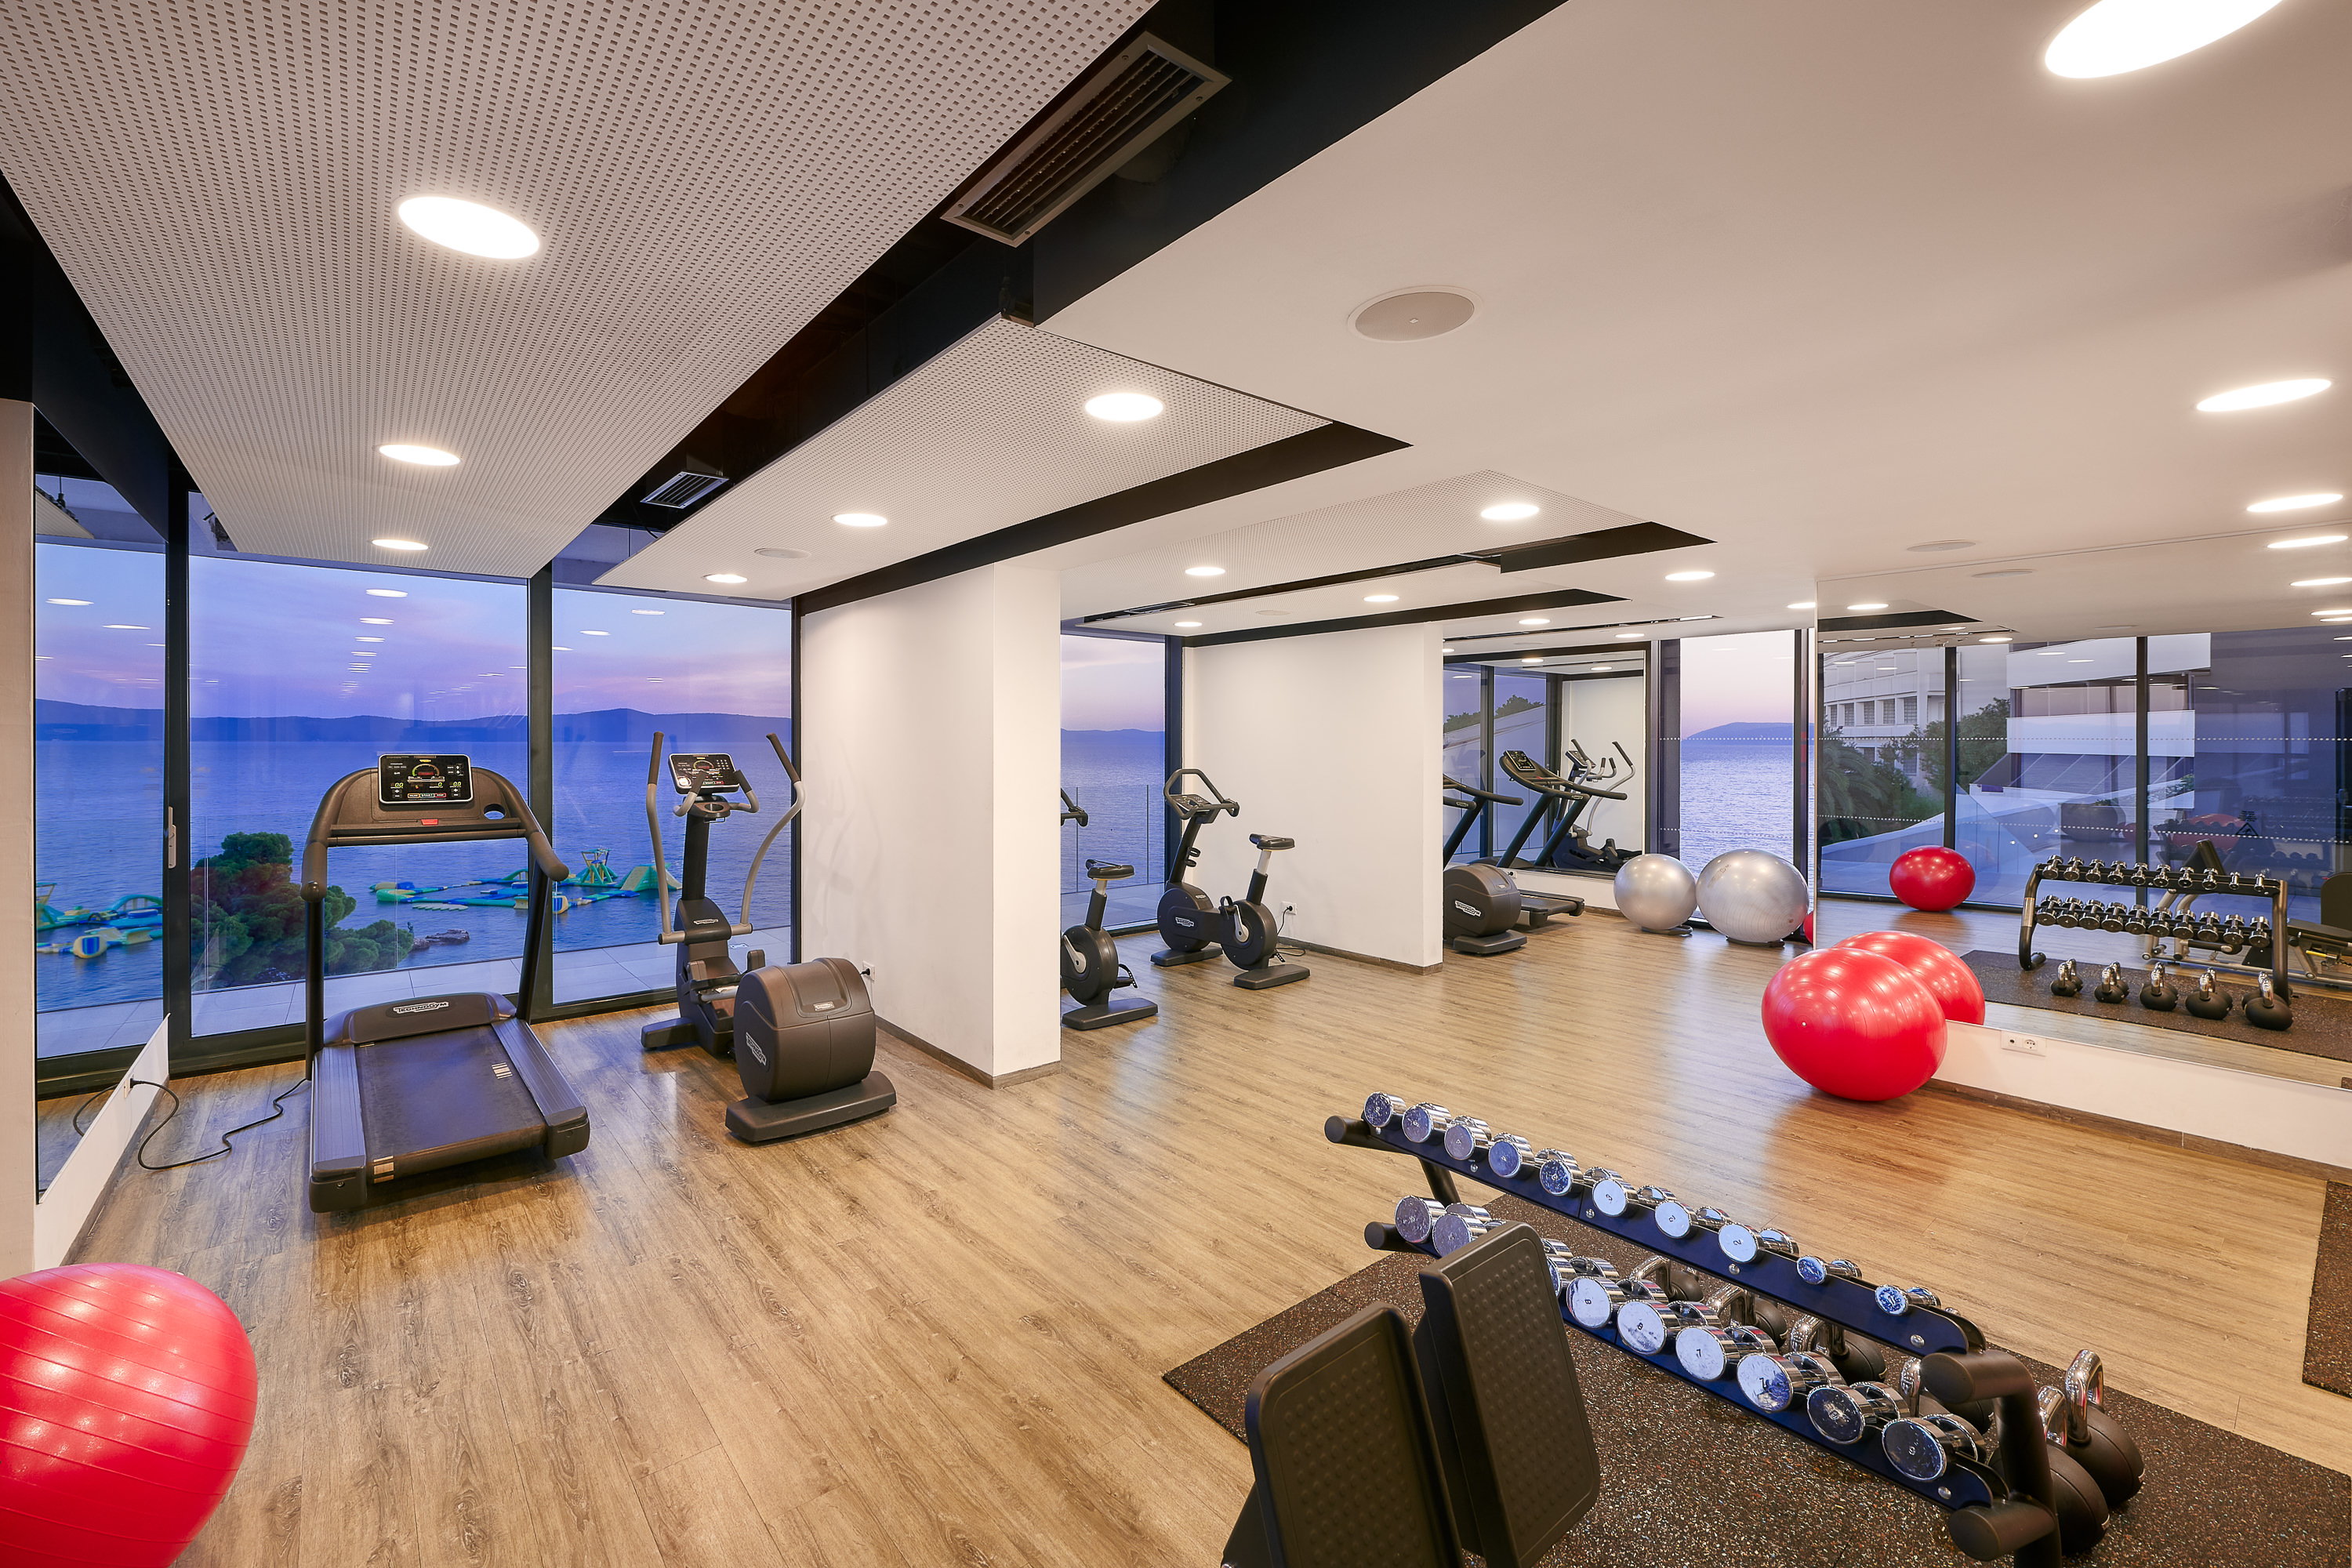 Copy of Medora Auri hotel fitness